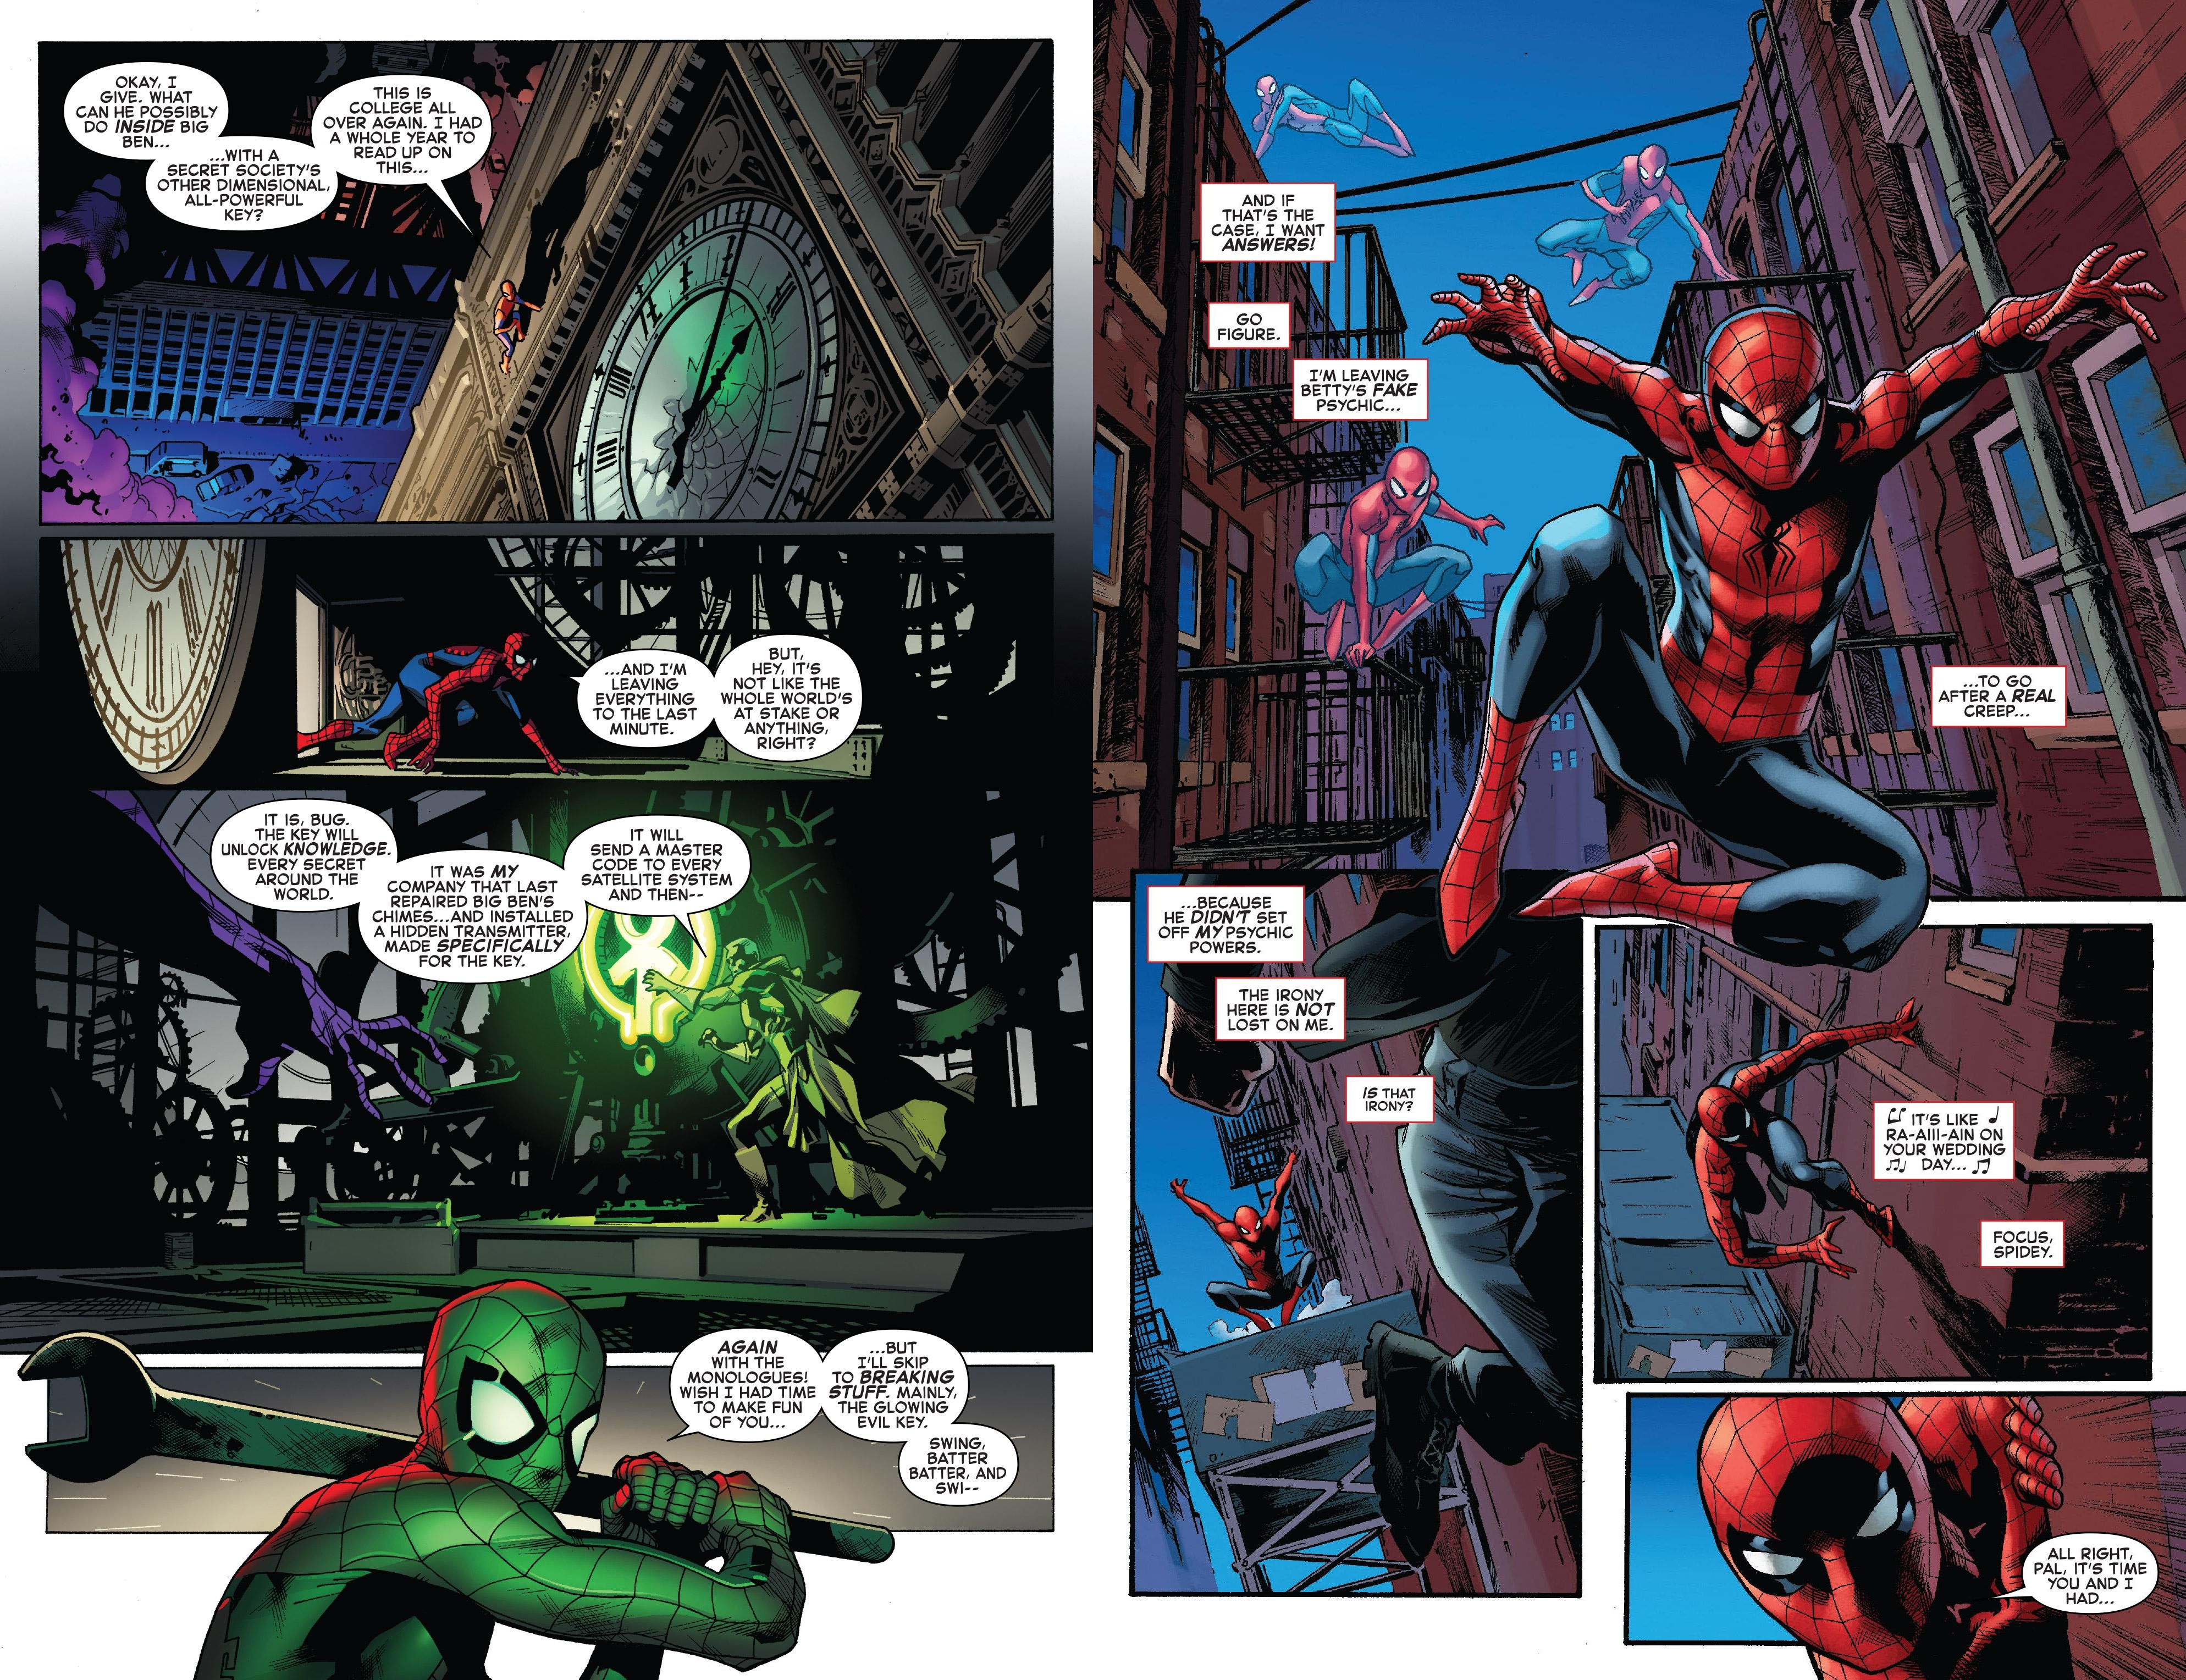 Amazing Spider-Man Worldwide V8 Threat Level Red review